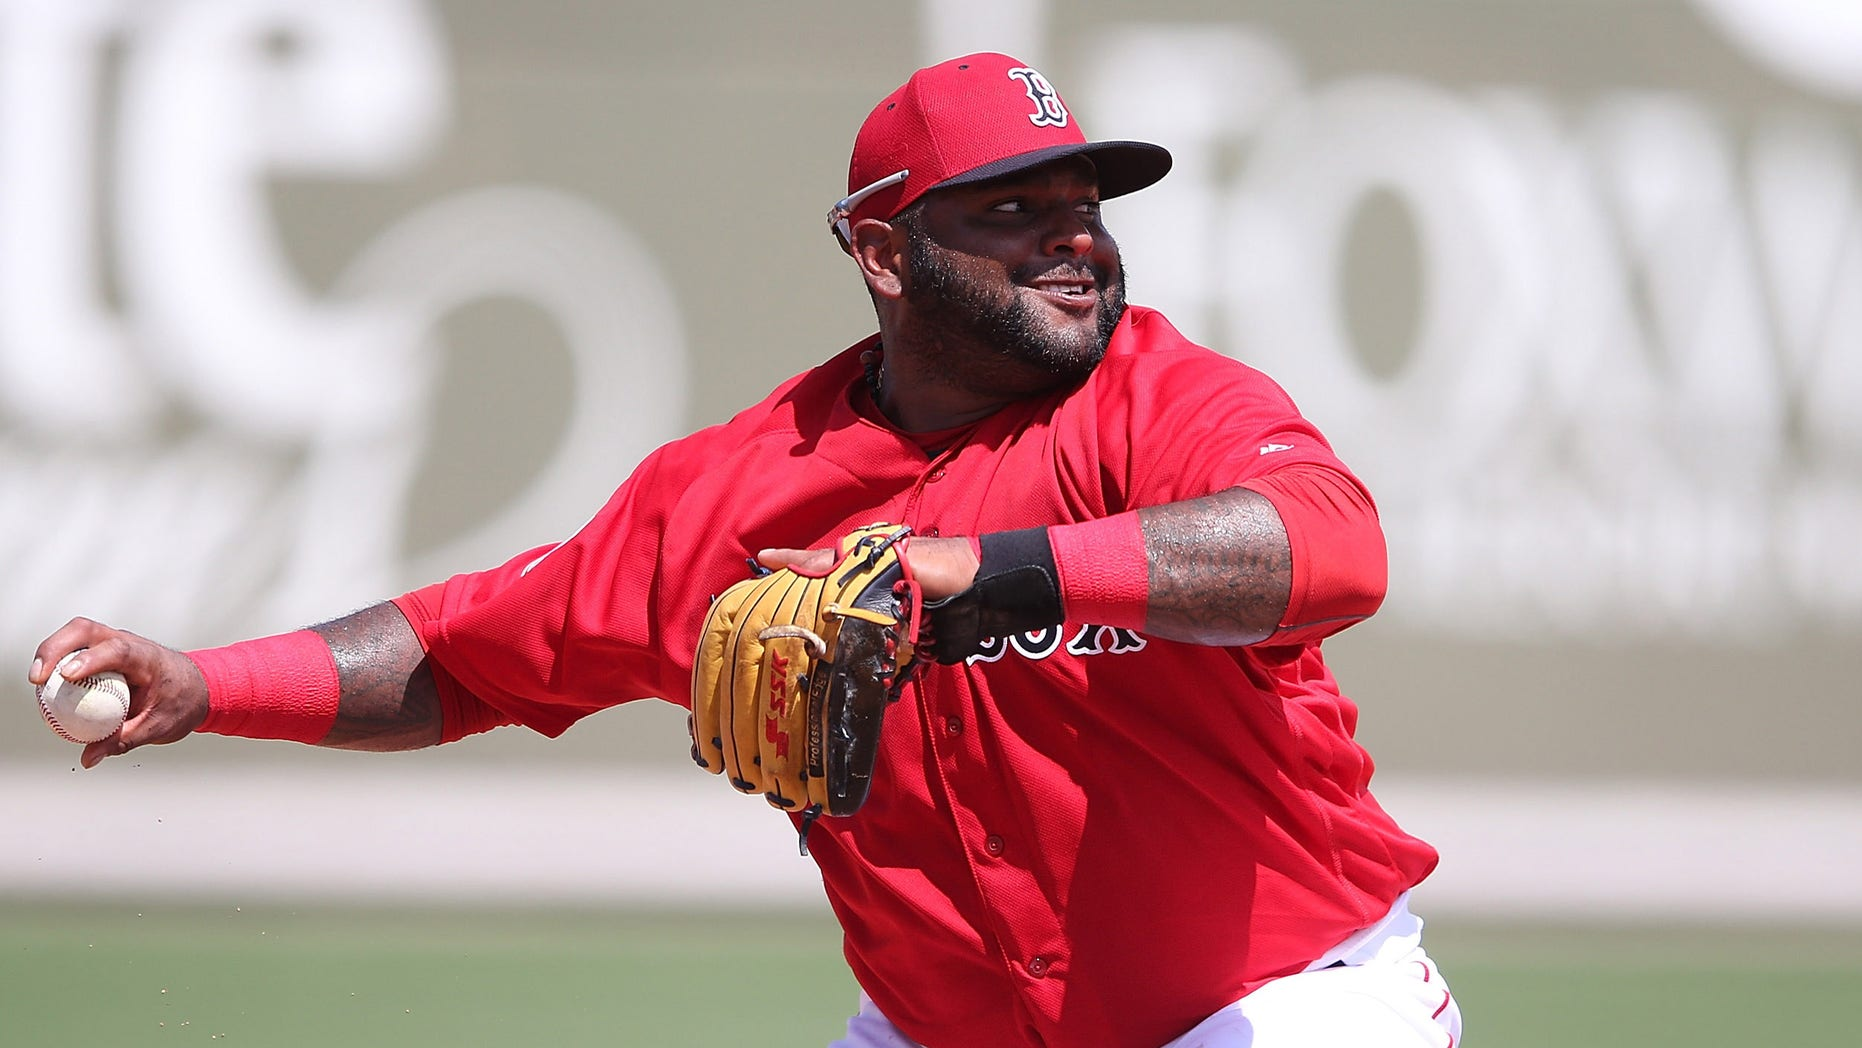 FORT MYERS, - MARCH 14: Pablo Sandoval #48 of the Boston Red Sox makes the throw to first on the ground ball from Jason Rogers (not in photo) of the Pittsburgh Pirates during the fourth inning of the Spring Training Game on March 14, 2016 at Jet Blue Park at Fenway South, Florida. The Pirates defeated the Red Sox 3-1. (Photo by Leon Halip/Getty Images)